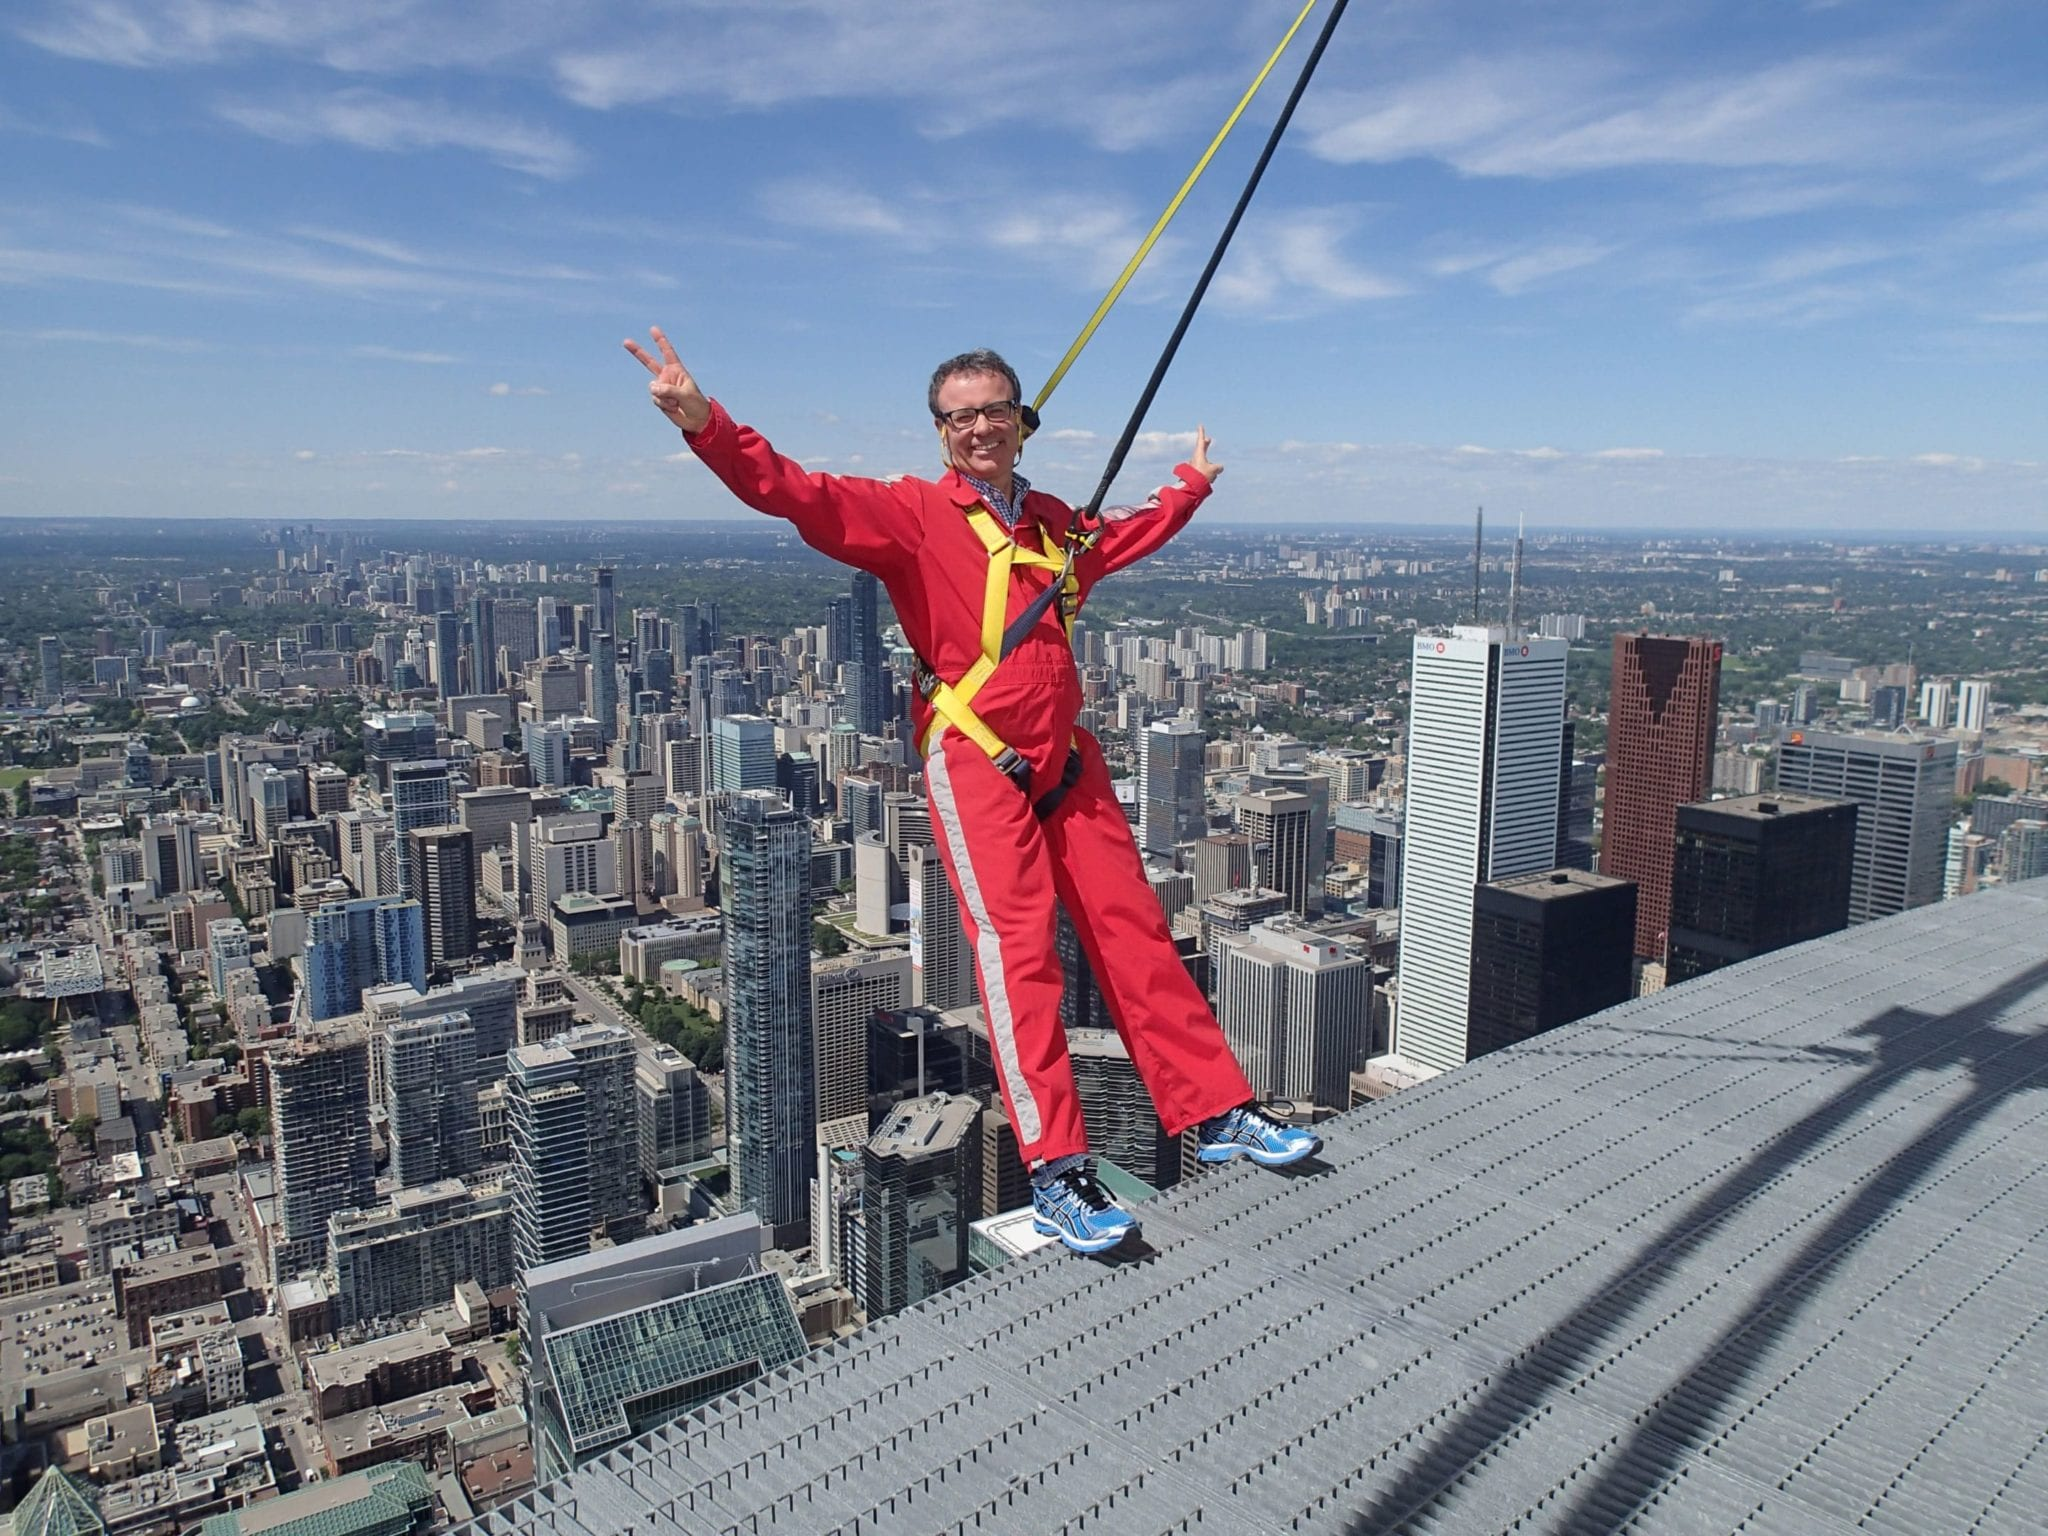 Tim Collins does the EdgeWalk